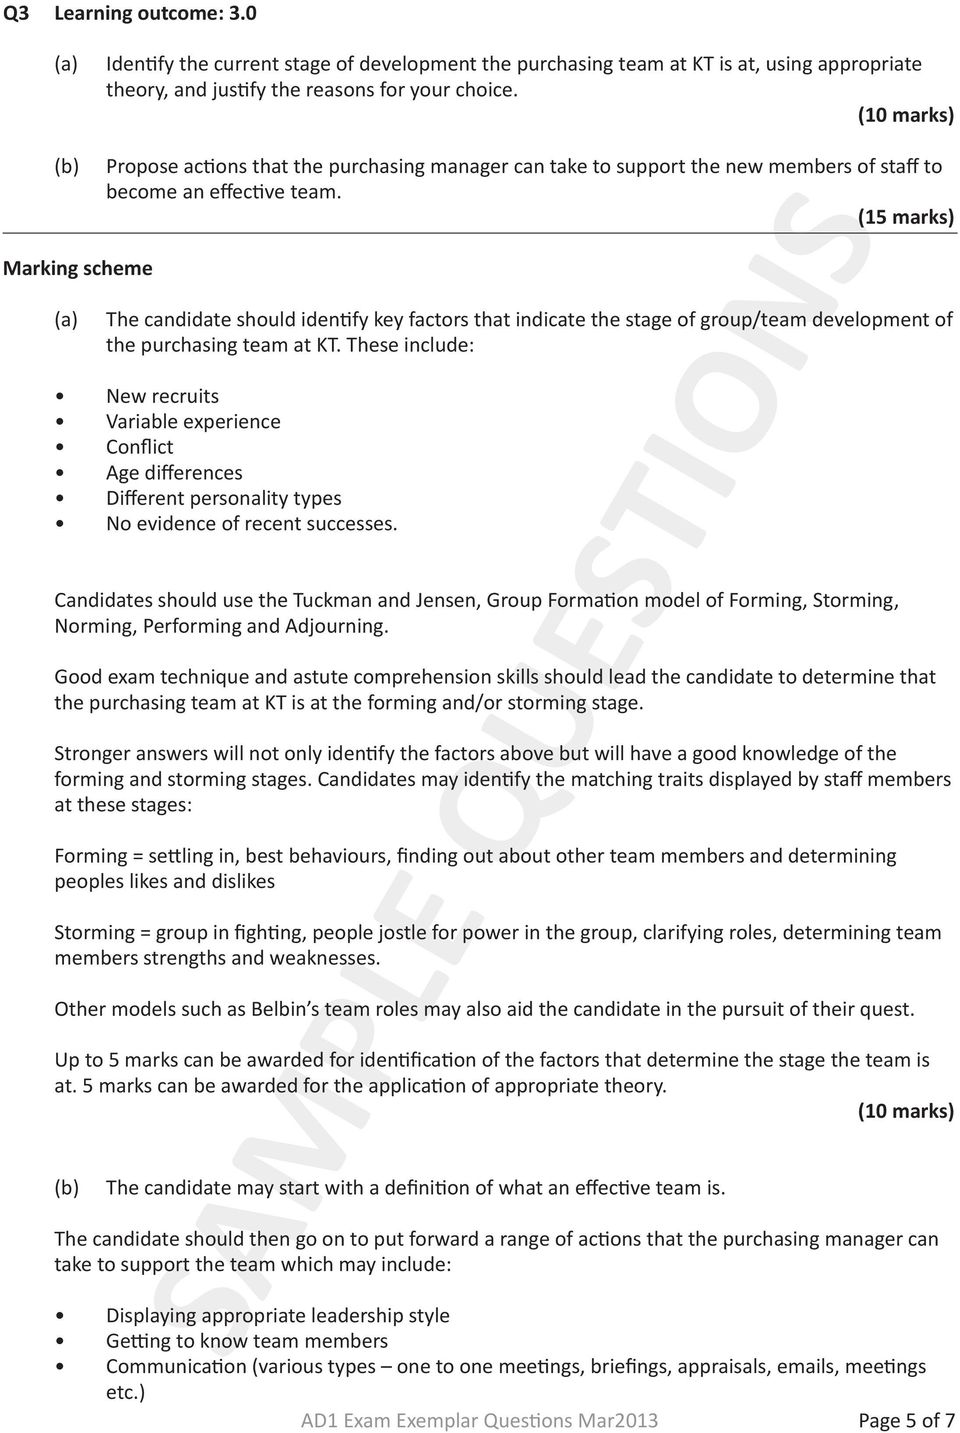 Purchasing management discussion questions